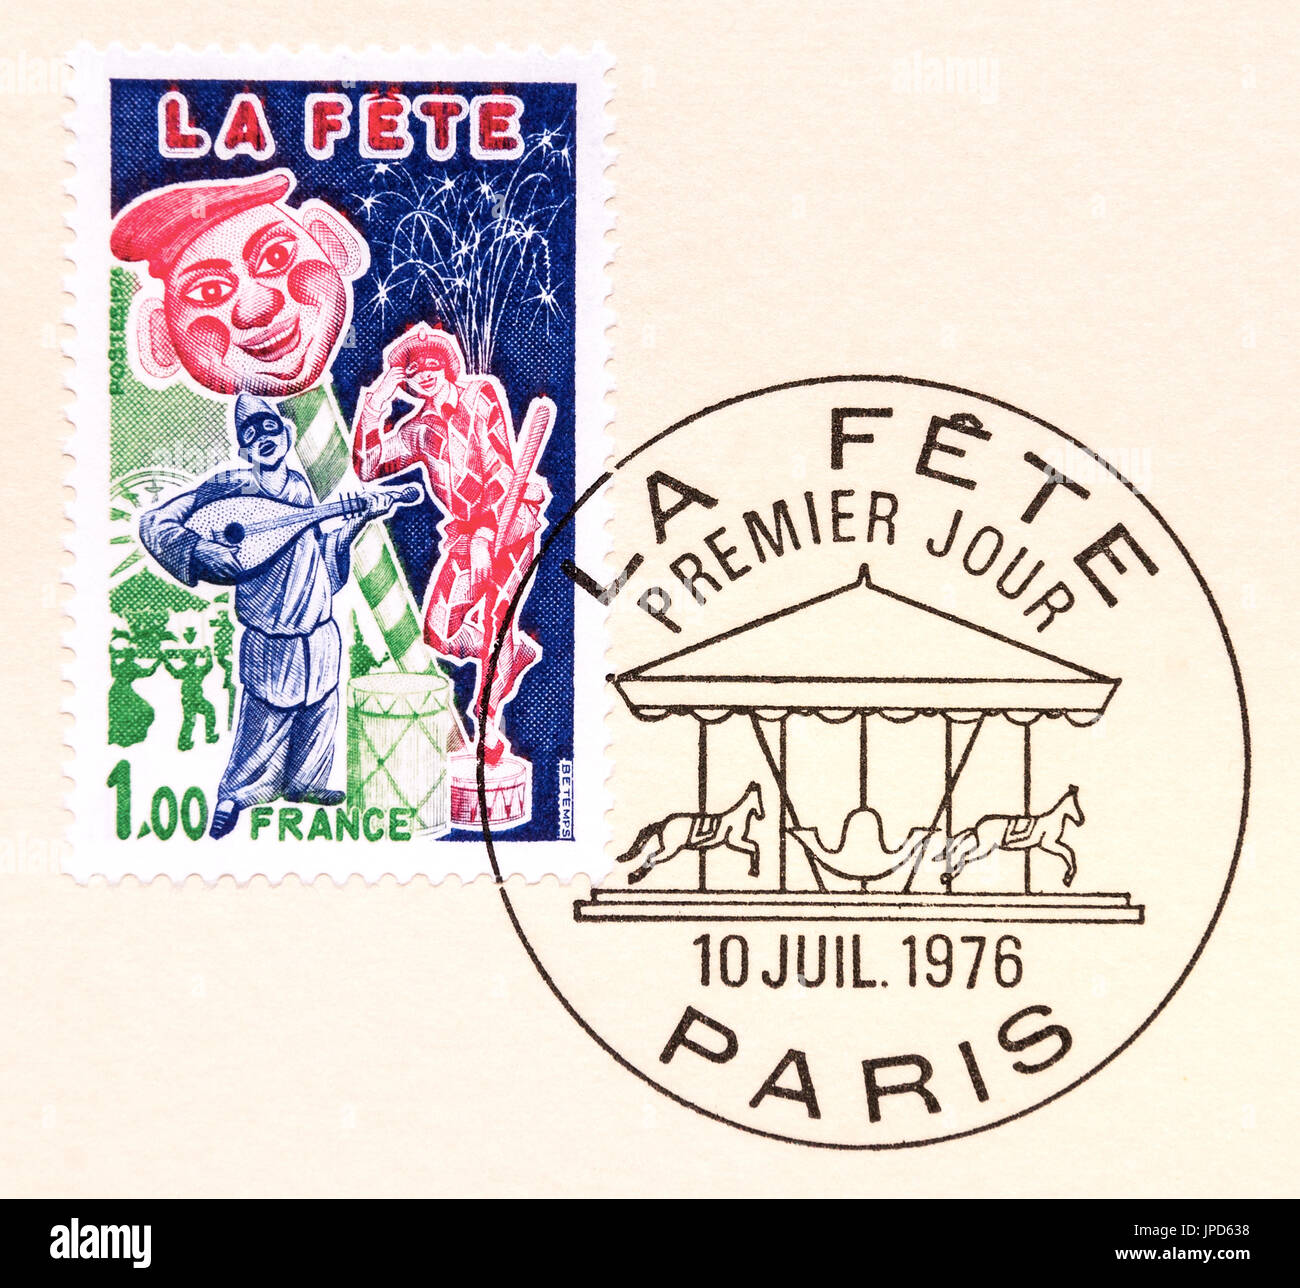 First day postmark on French stamp - La Fete. - Stock Image